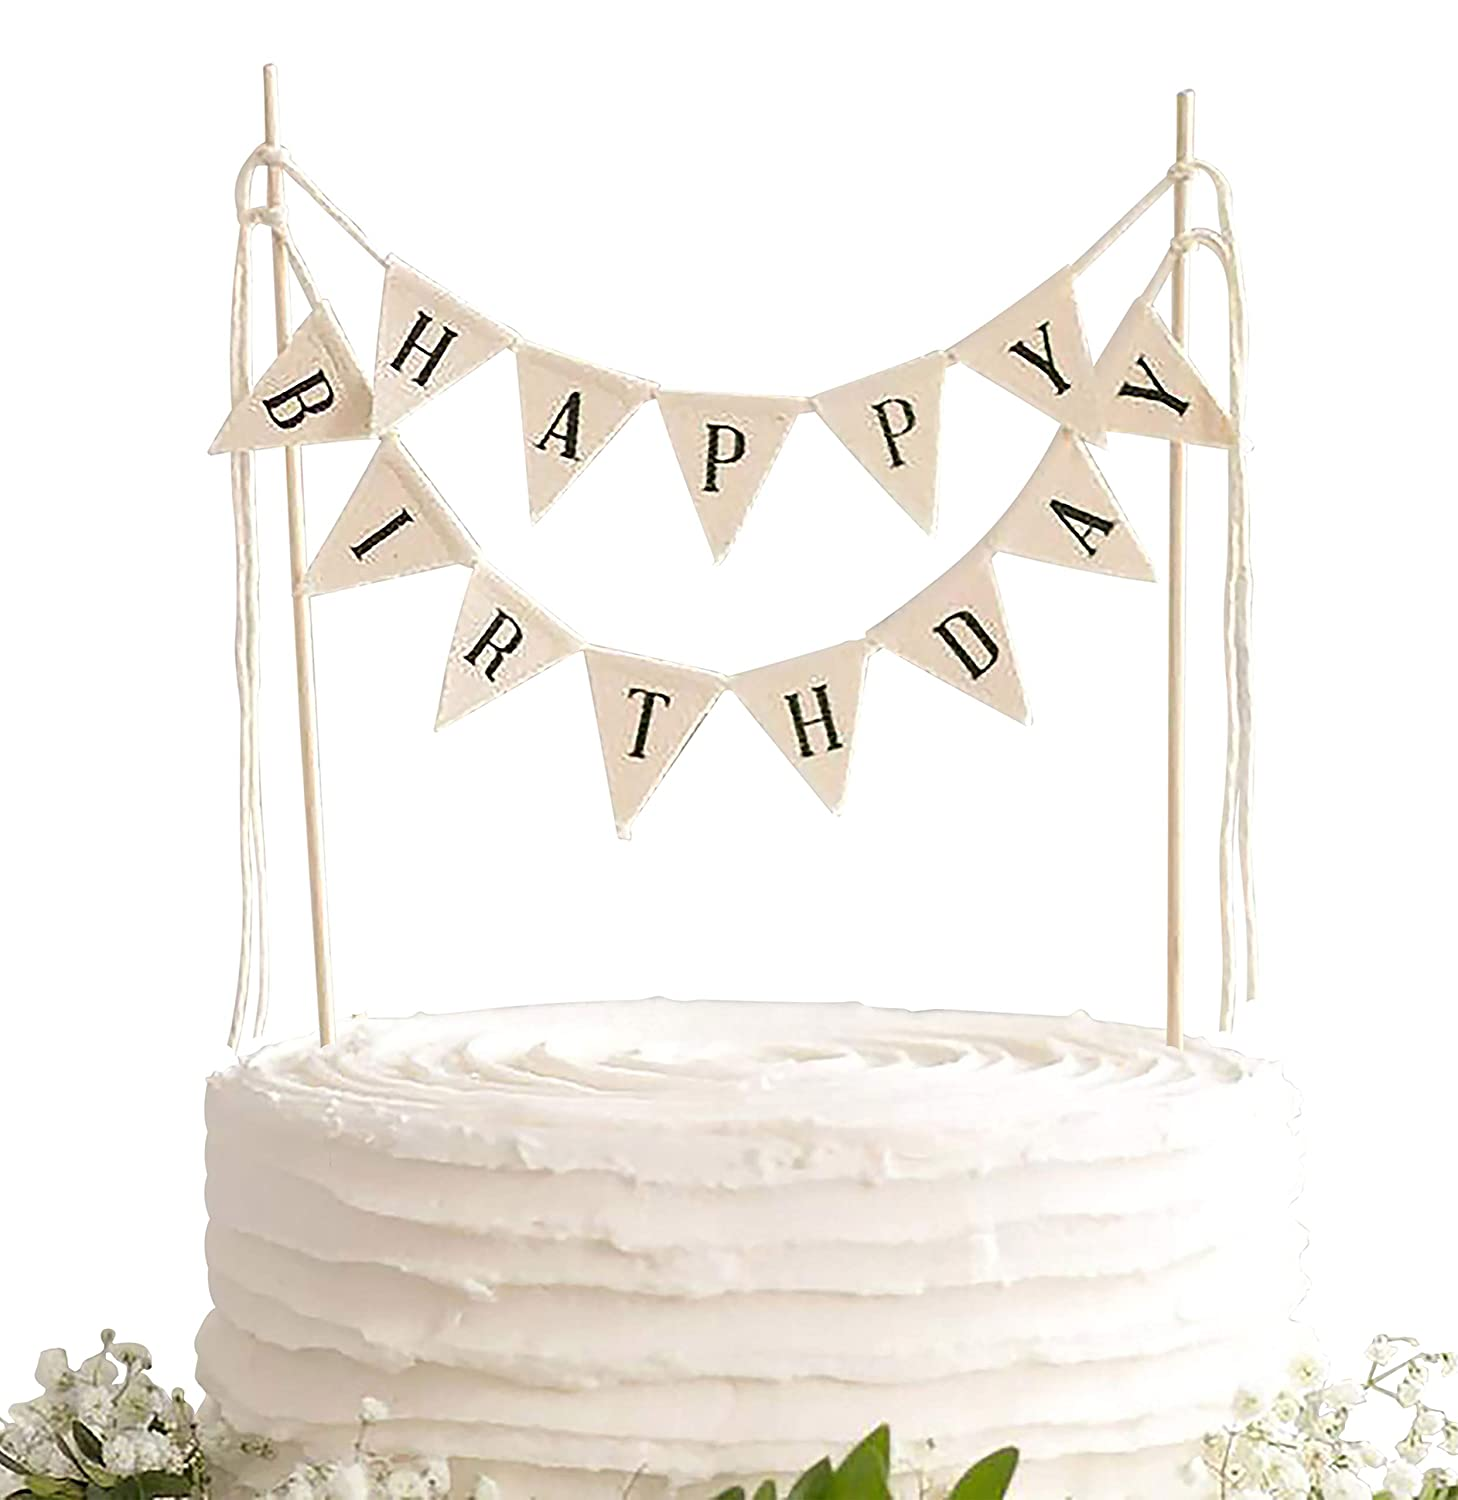 TECCA Happy Birthday Cake Topper Banner with White Burlap Bunting Flags. Handmade Food-Grade Safe Gender Neutral Party Decorations. Pre-assembled and Reusable for any Age or Themed Party.